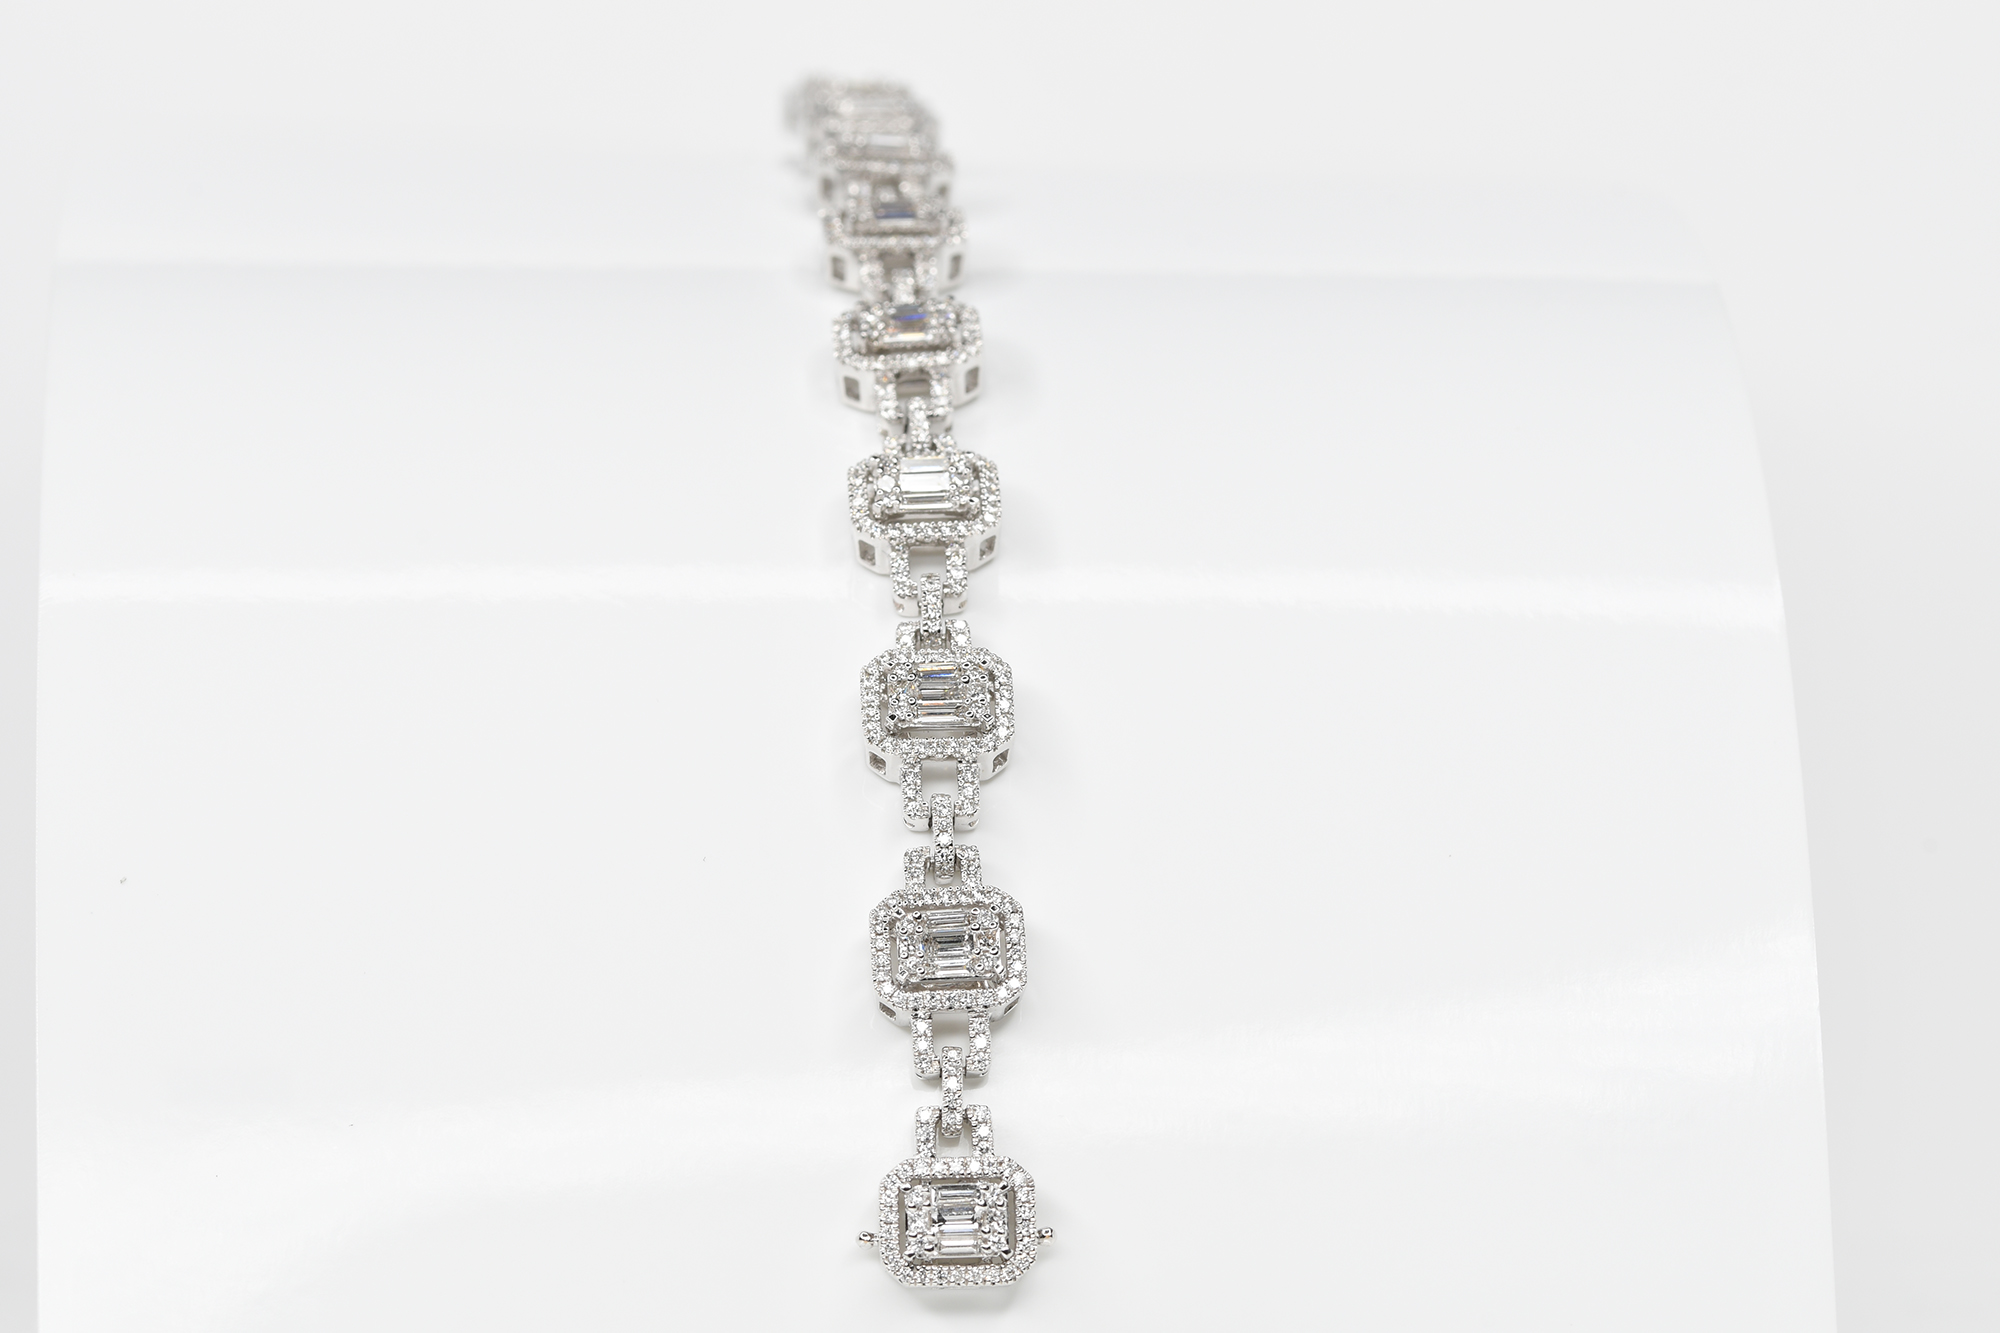 Diamond Bracelet - Image 2 of 3